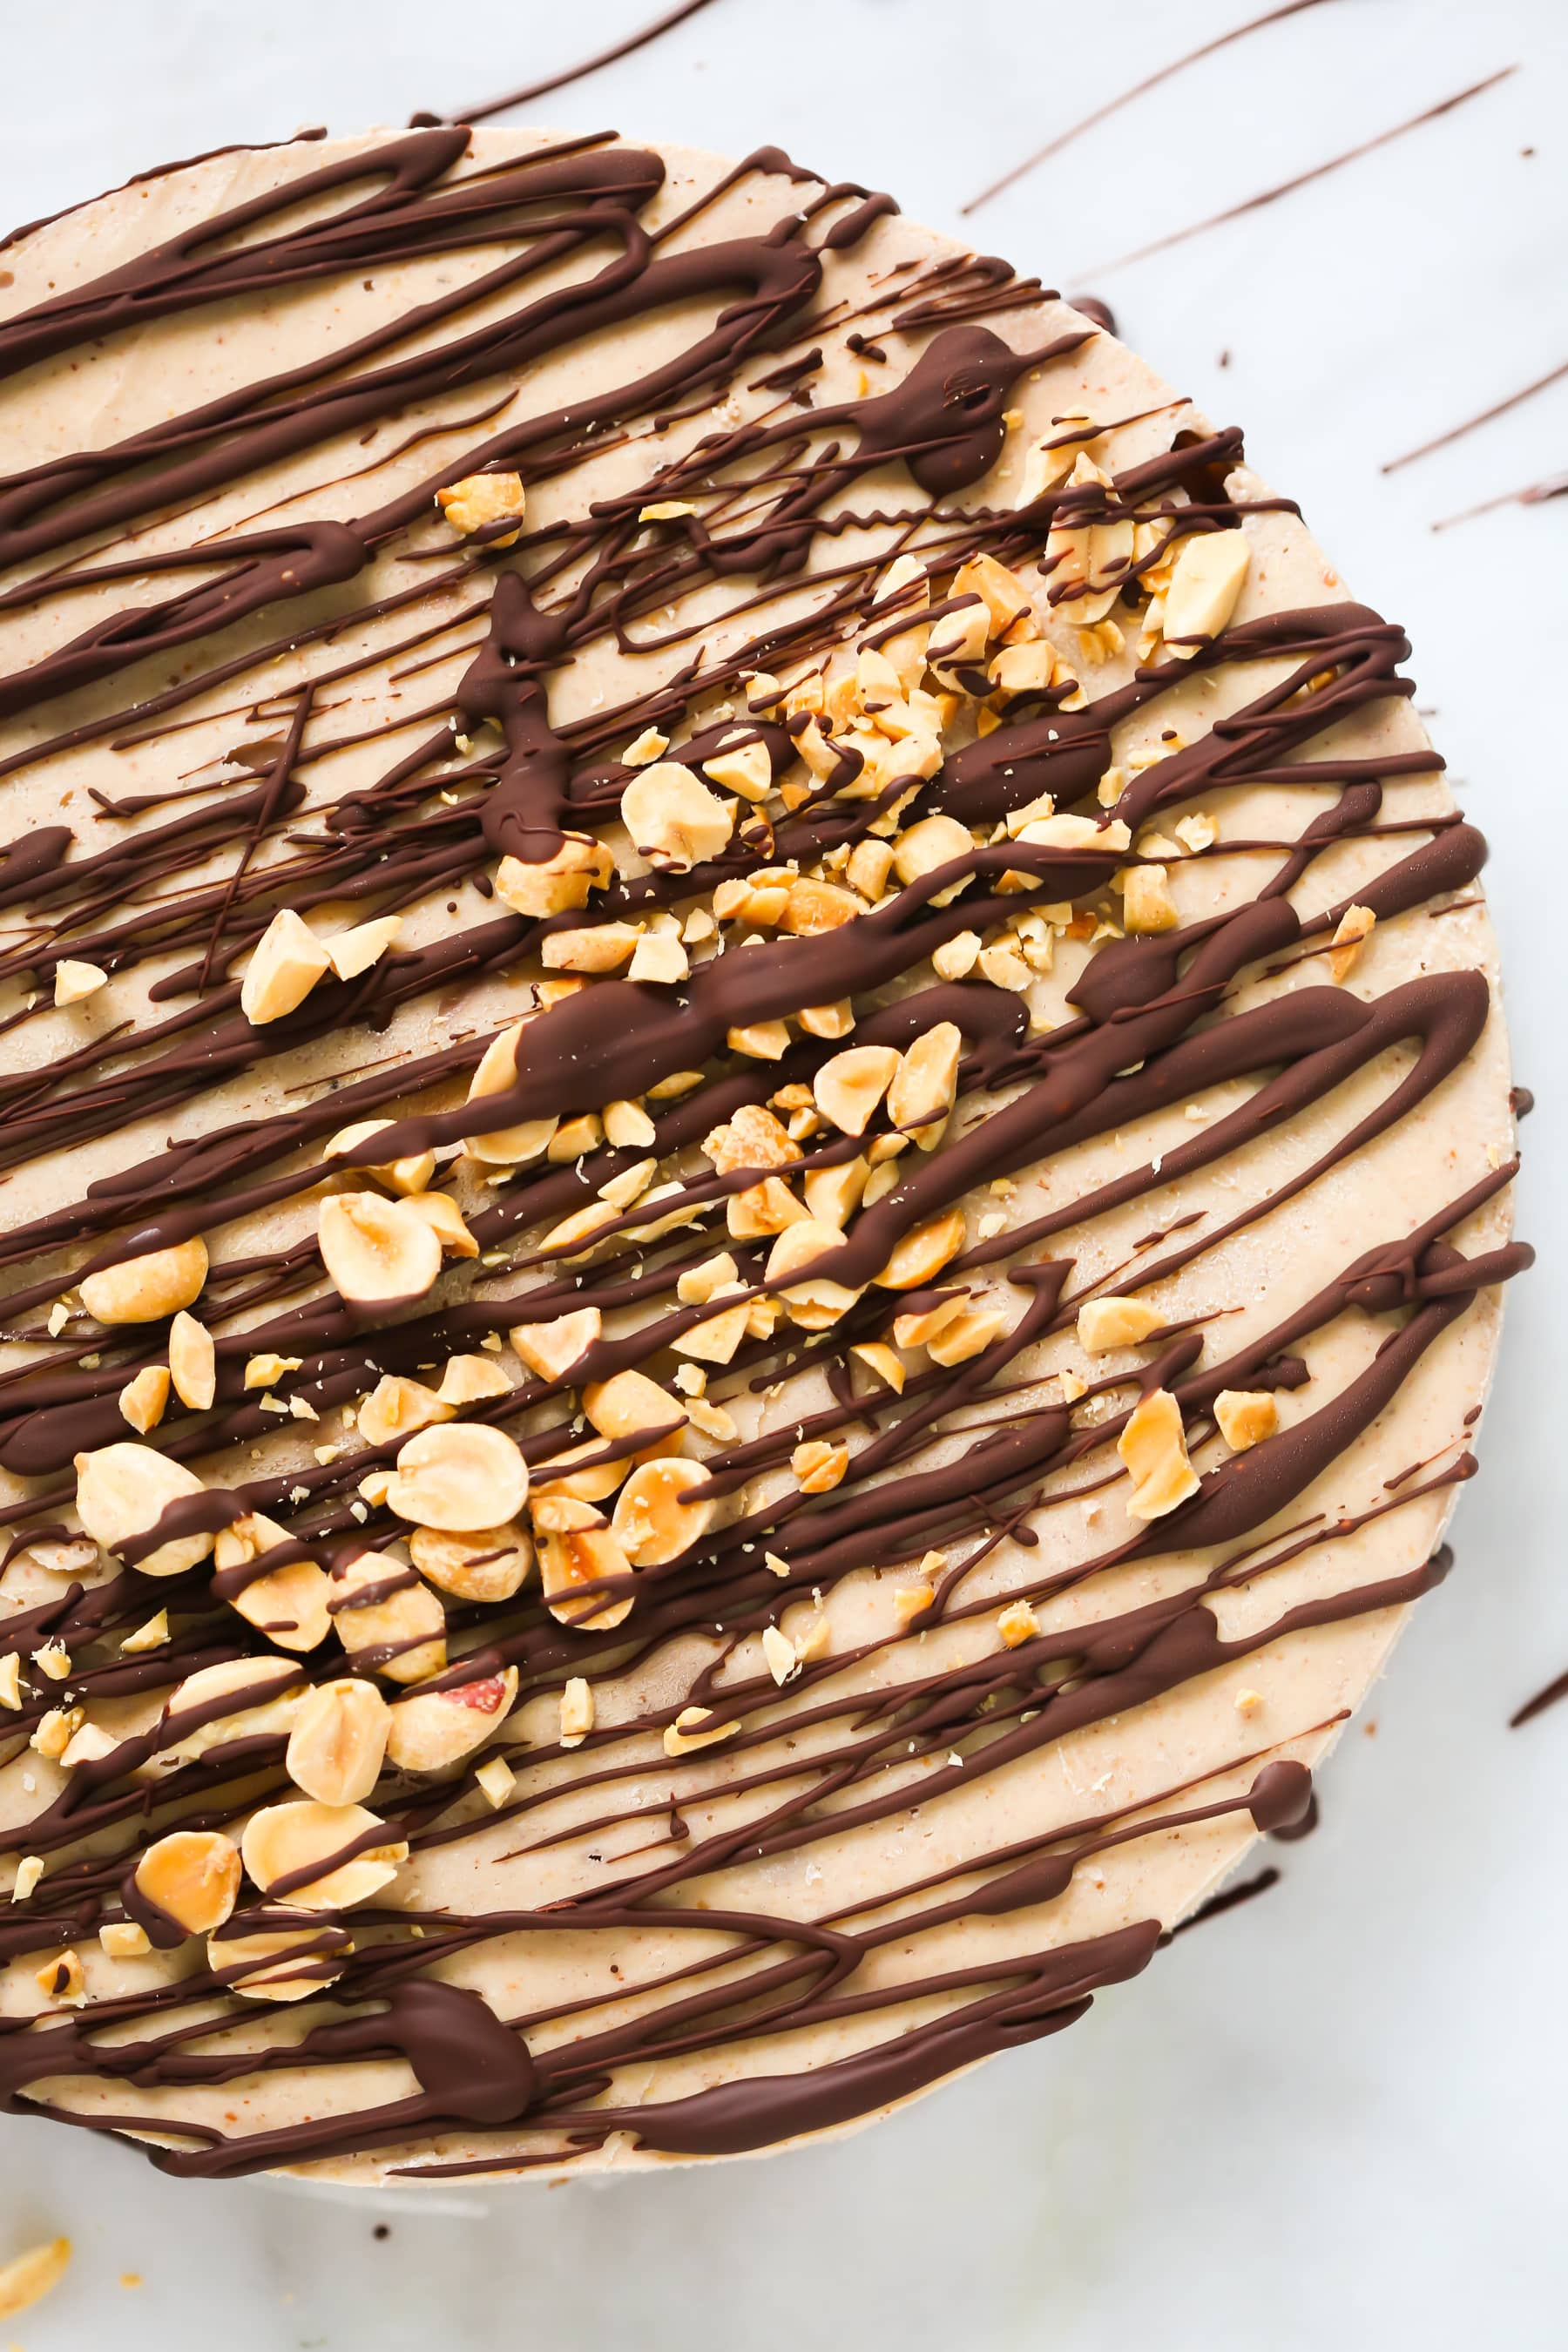 Gluten-free No Bake Peanut Butter Pie - This Gluten-free No Bake Peanut Butter Pie is very creamy, vegan, dairy-free, delicious and incredible easy to throw together.